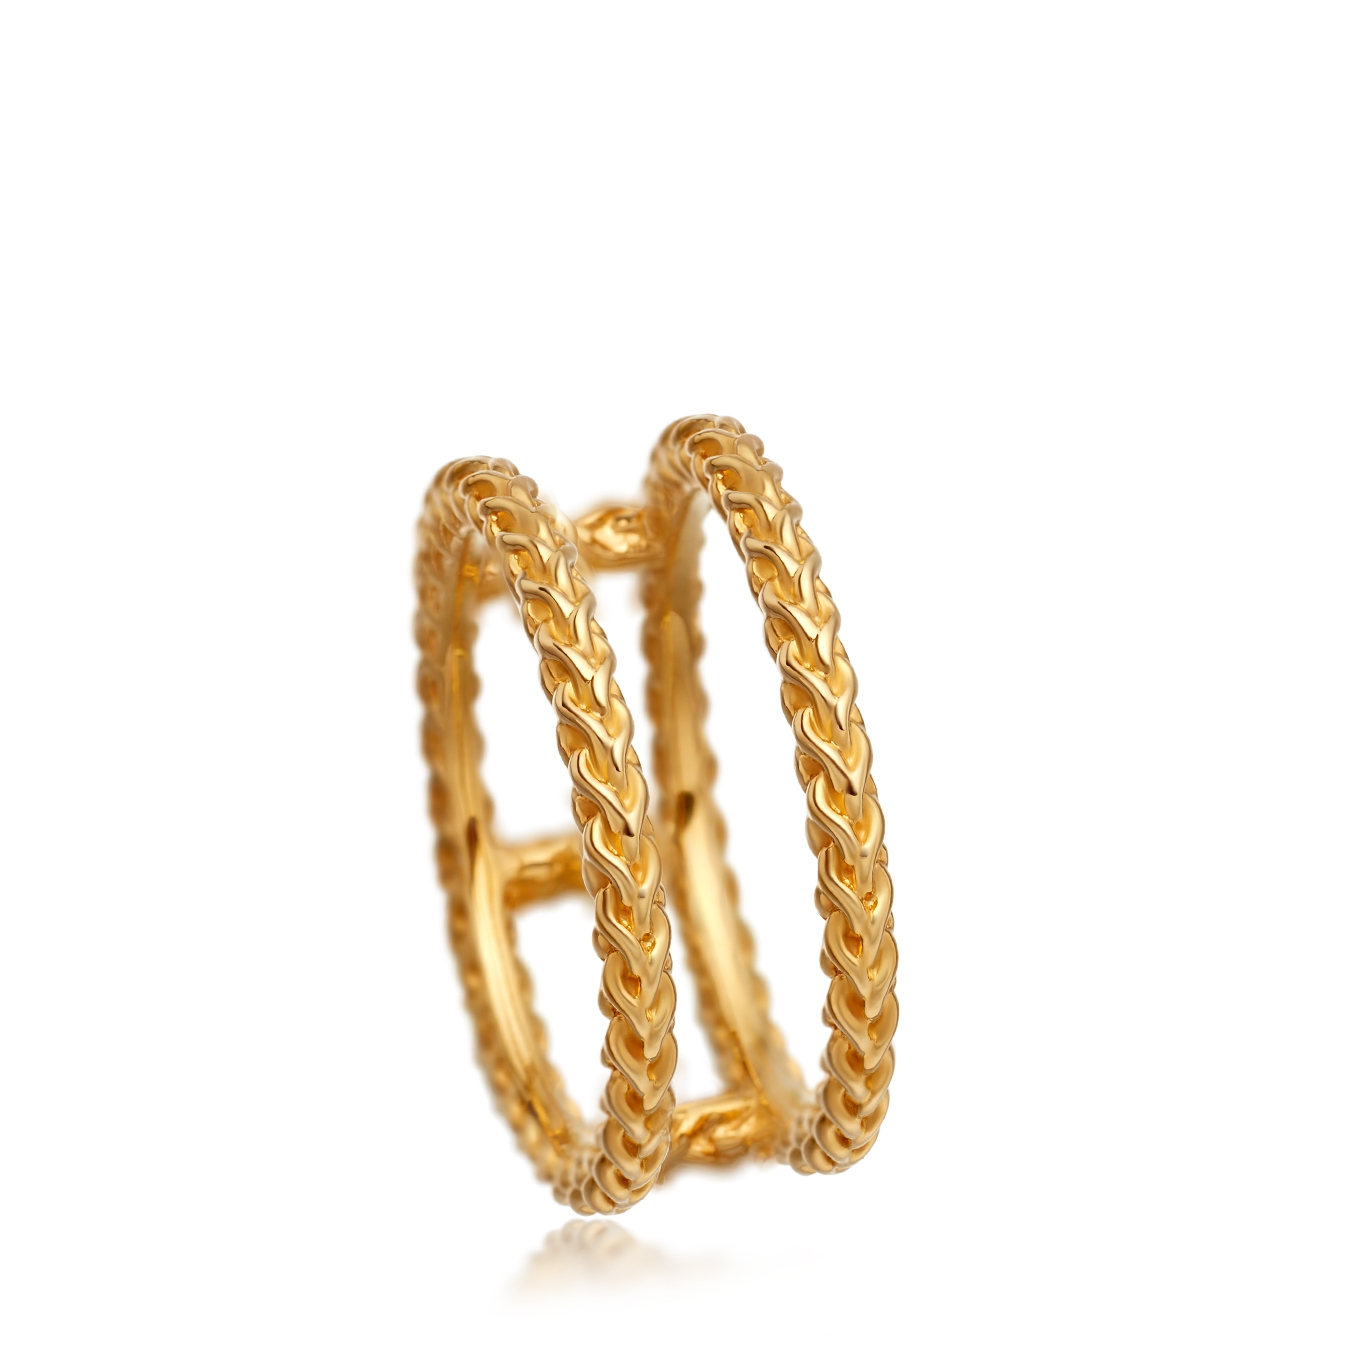 Double Spiga Stilla Ring